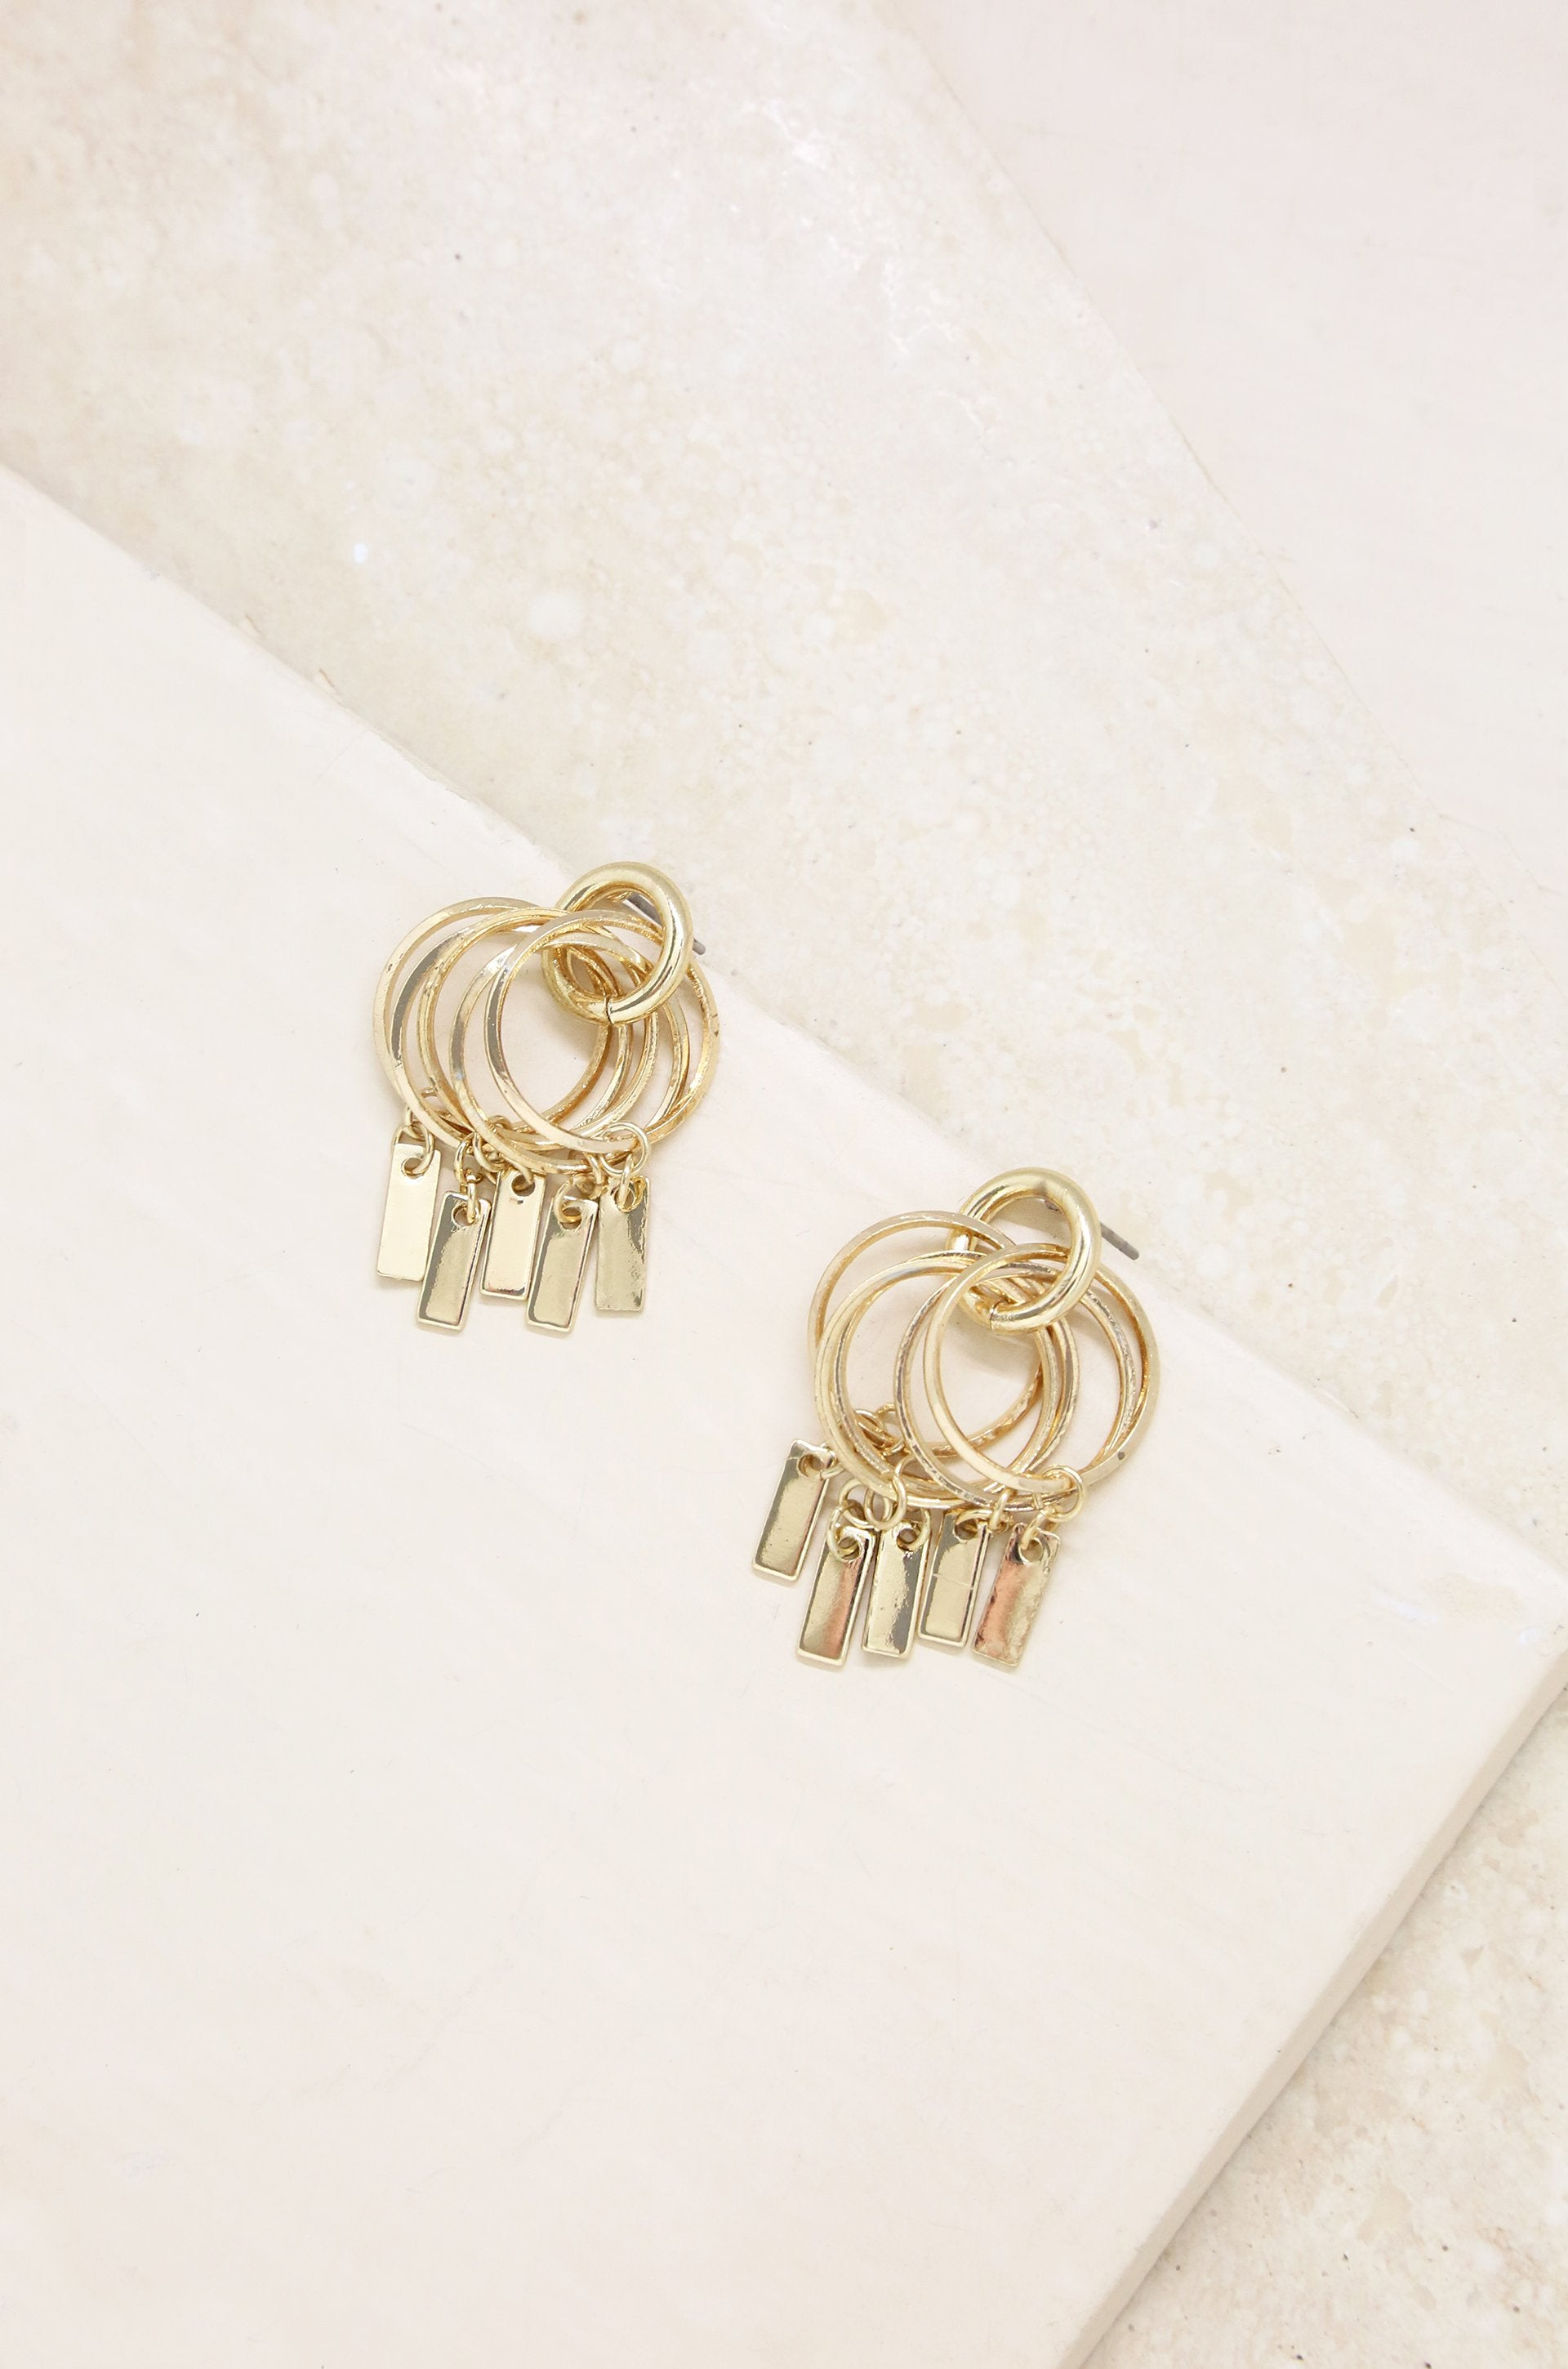 Mini Jingle Bar Charms & 18kt Gold Plated Stud